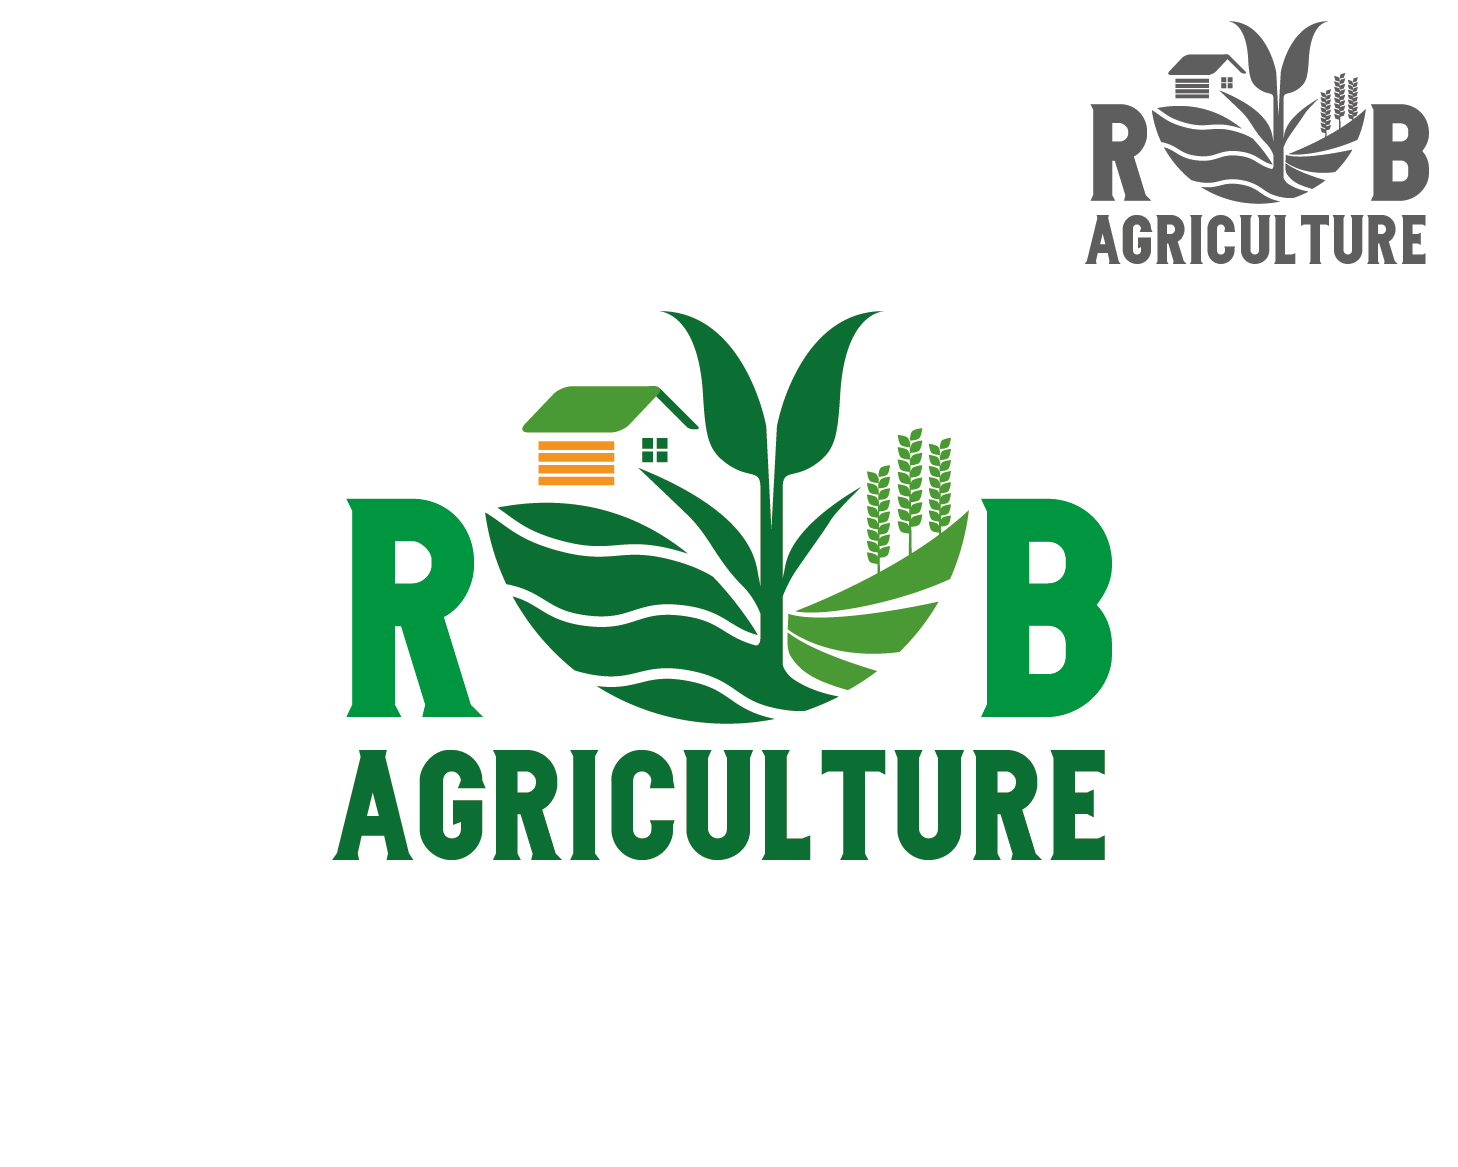 Logo Design by VENTSISLAV KOVACHEV - Entry No. 121 in the Logo Design Contest Captivating Logo Design for R & B Agriculture.